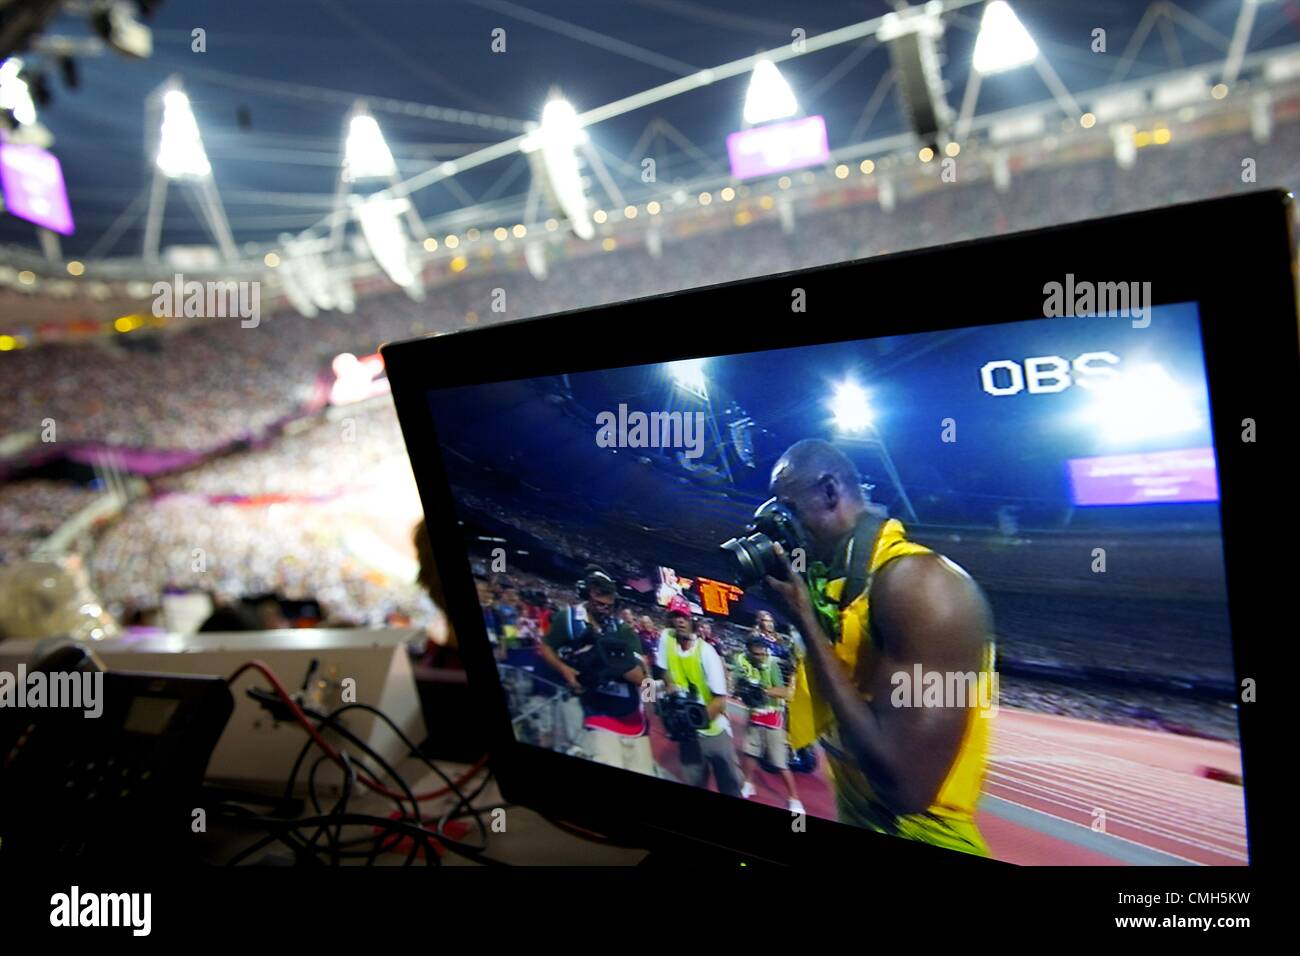 Aug. 9, 2012 - London, England, United Kingdom - As seen on a television monitor within Olympic Stadium, Jamaican - Stock Image